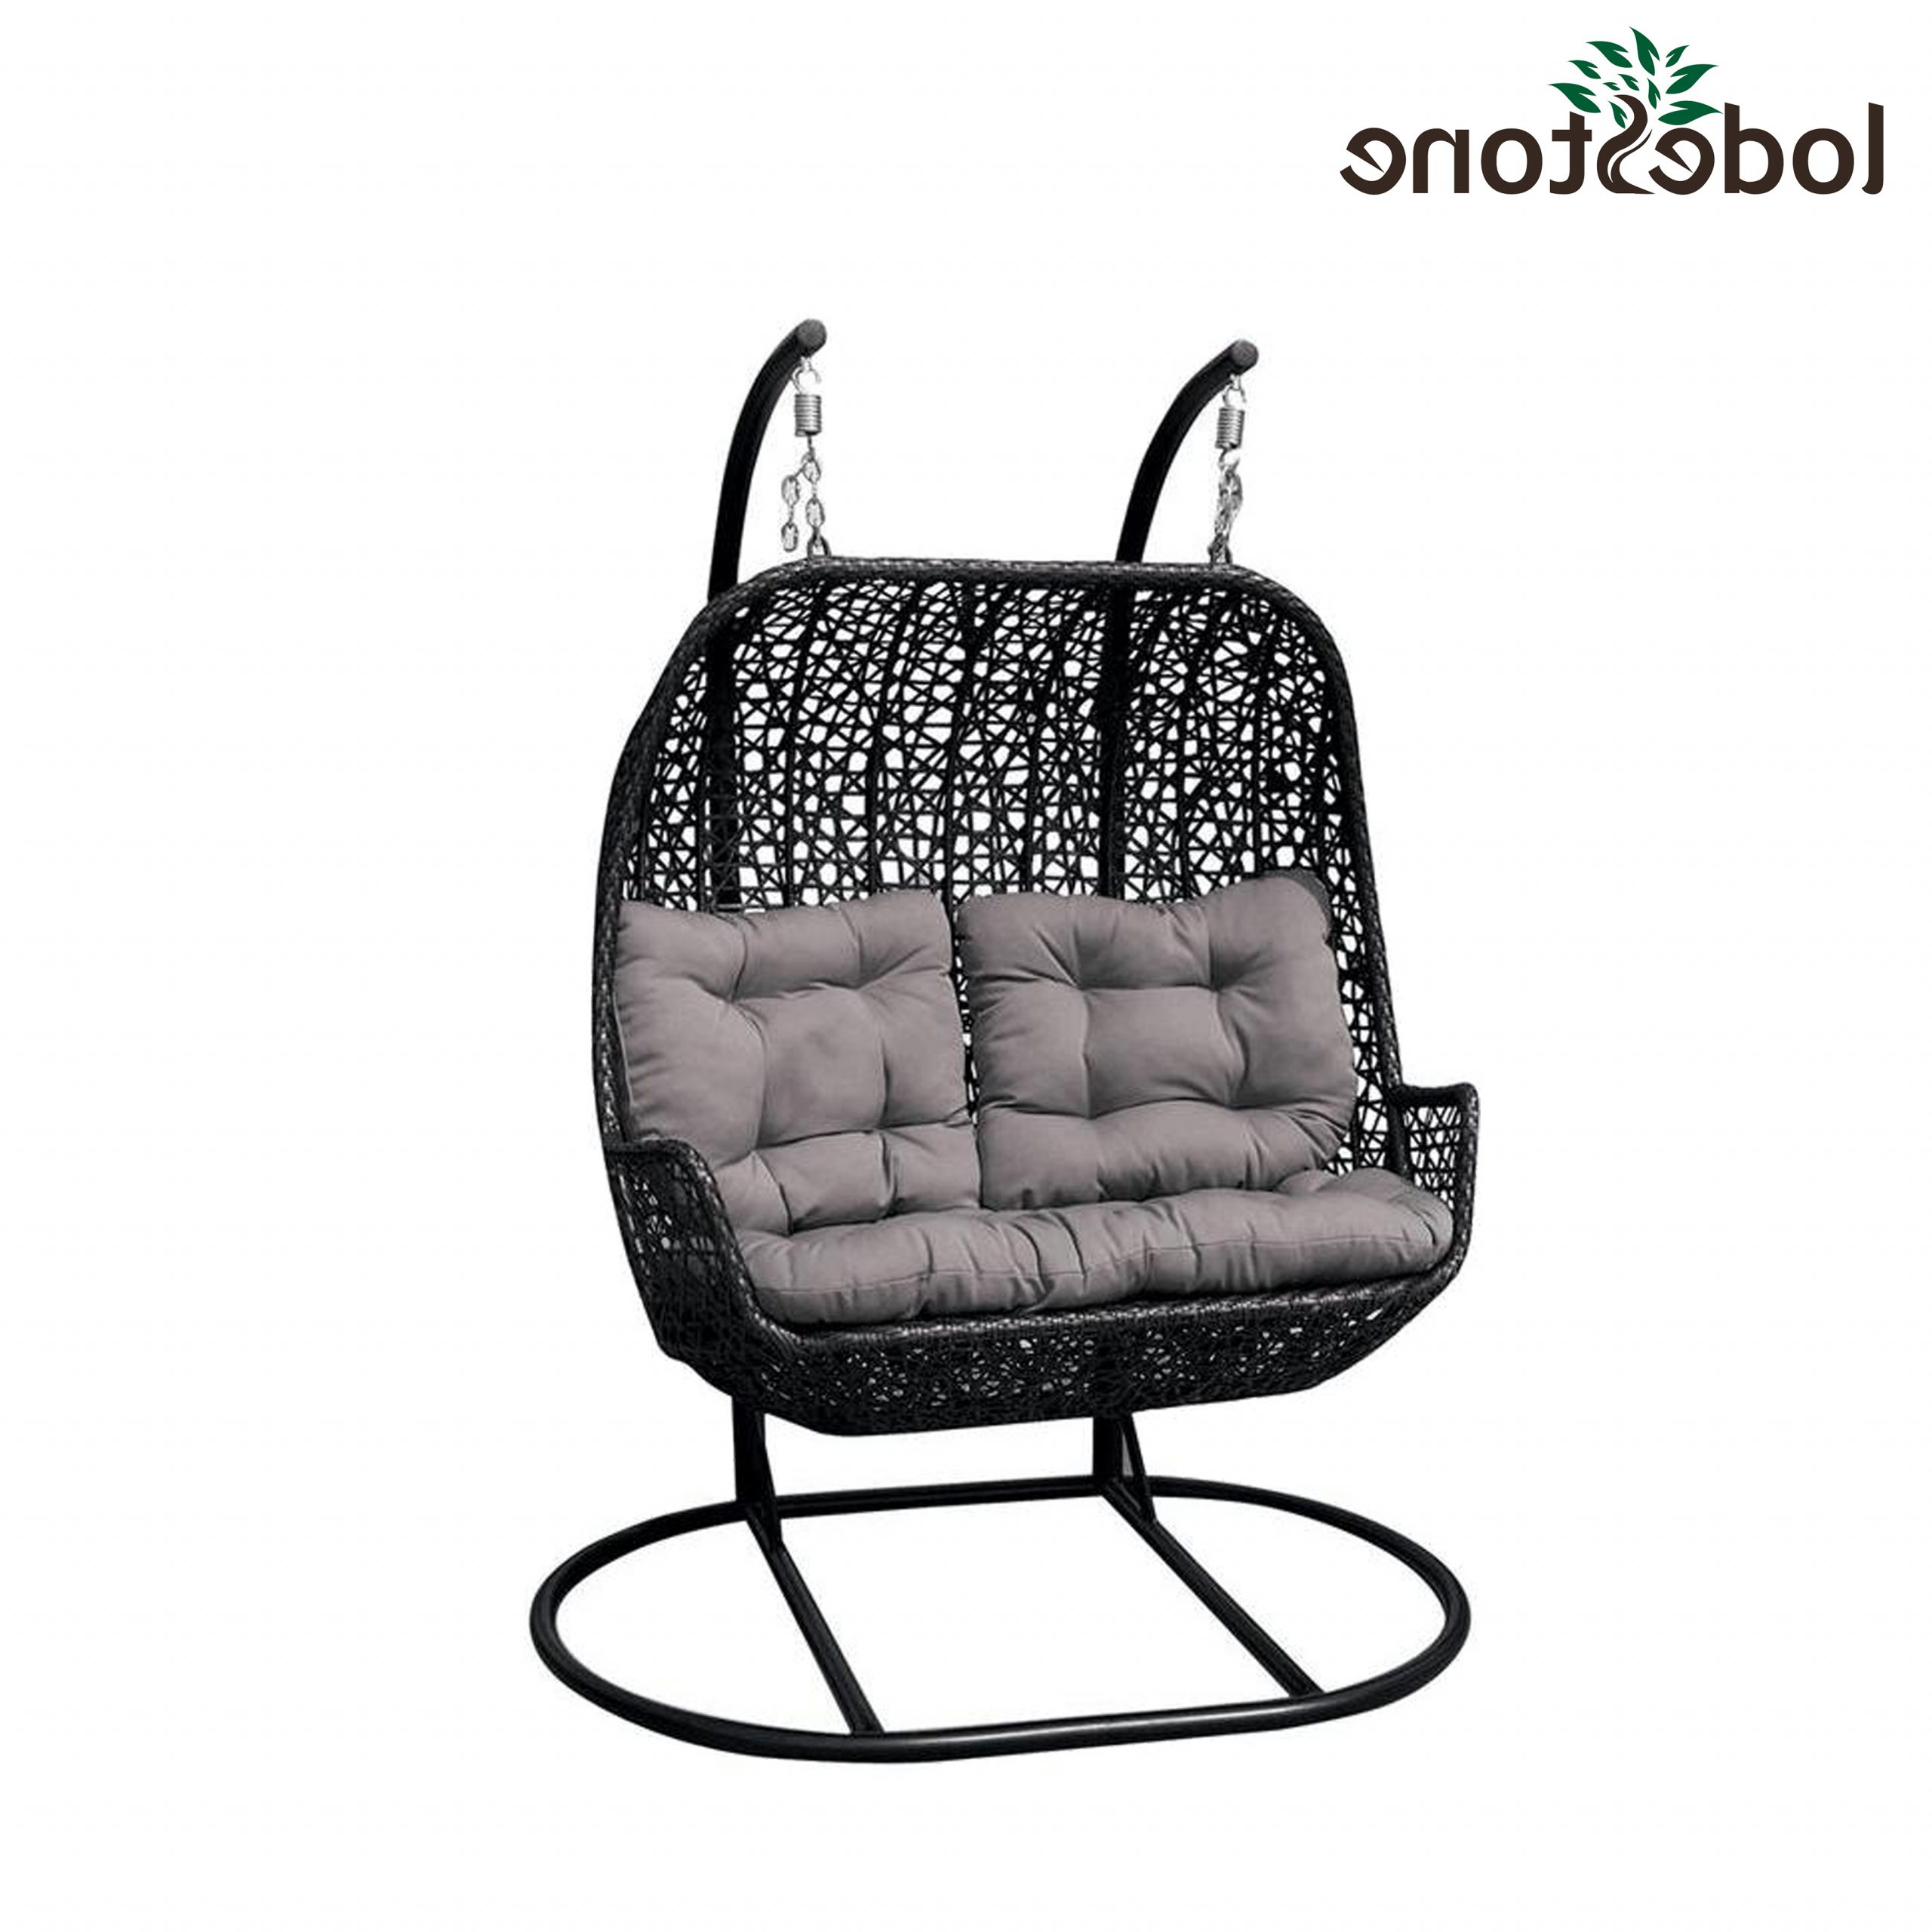 Most Recent China Swing Rattan, China Swing Rattan Manufacturers And With Regard To Outdoor Furniture yacht Club 2 Person Recycled Plastic Outdoor Swings (View 29 of 30)